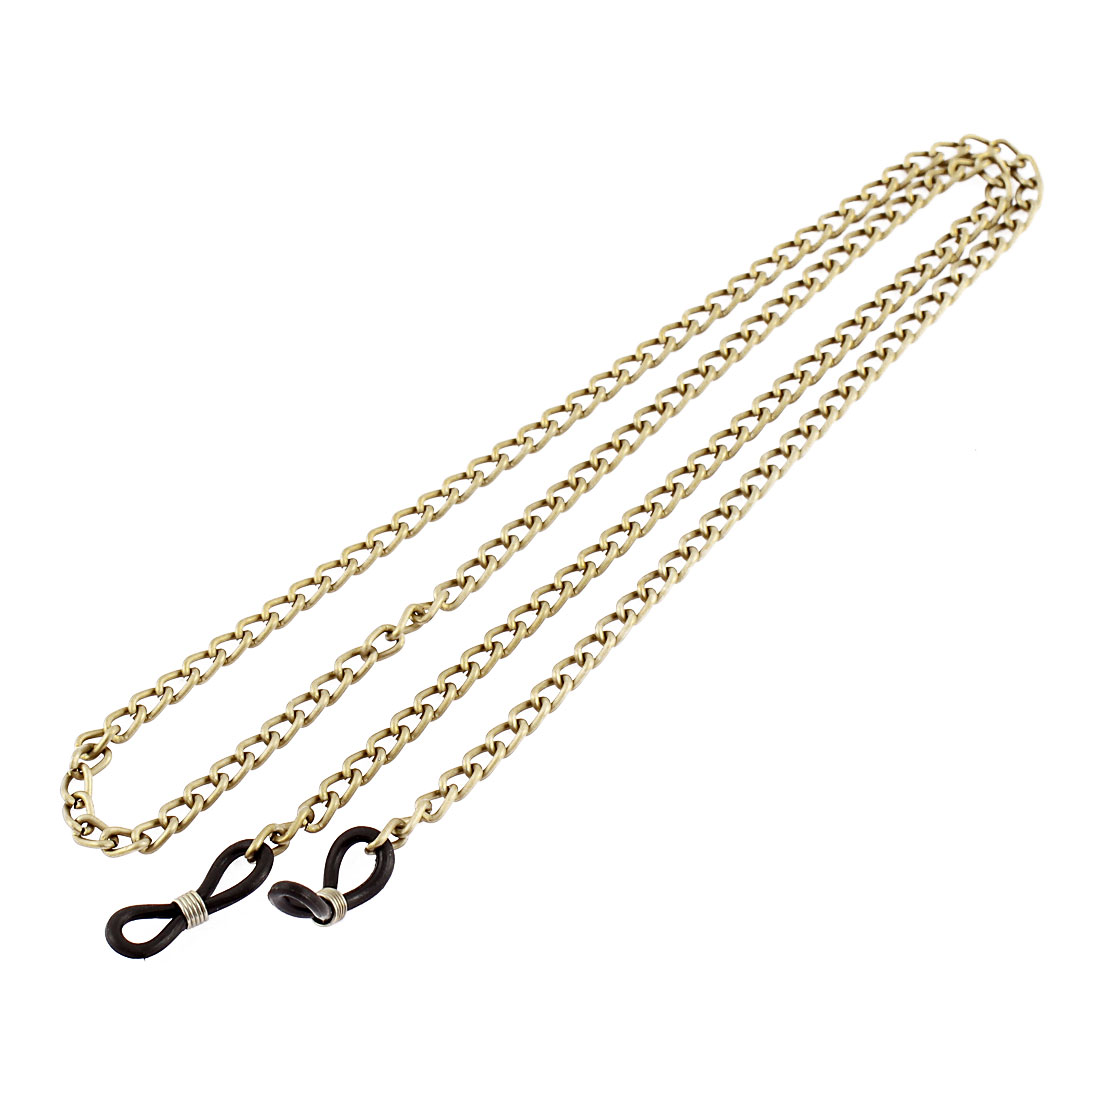 Eyeglasses Sunglasses Metal Chain Neck Cord Strap Glasses Retainer Bronze Tone